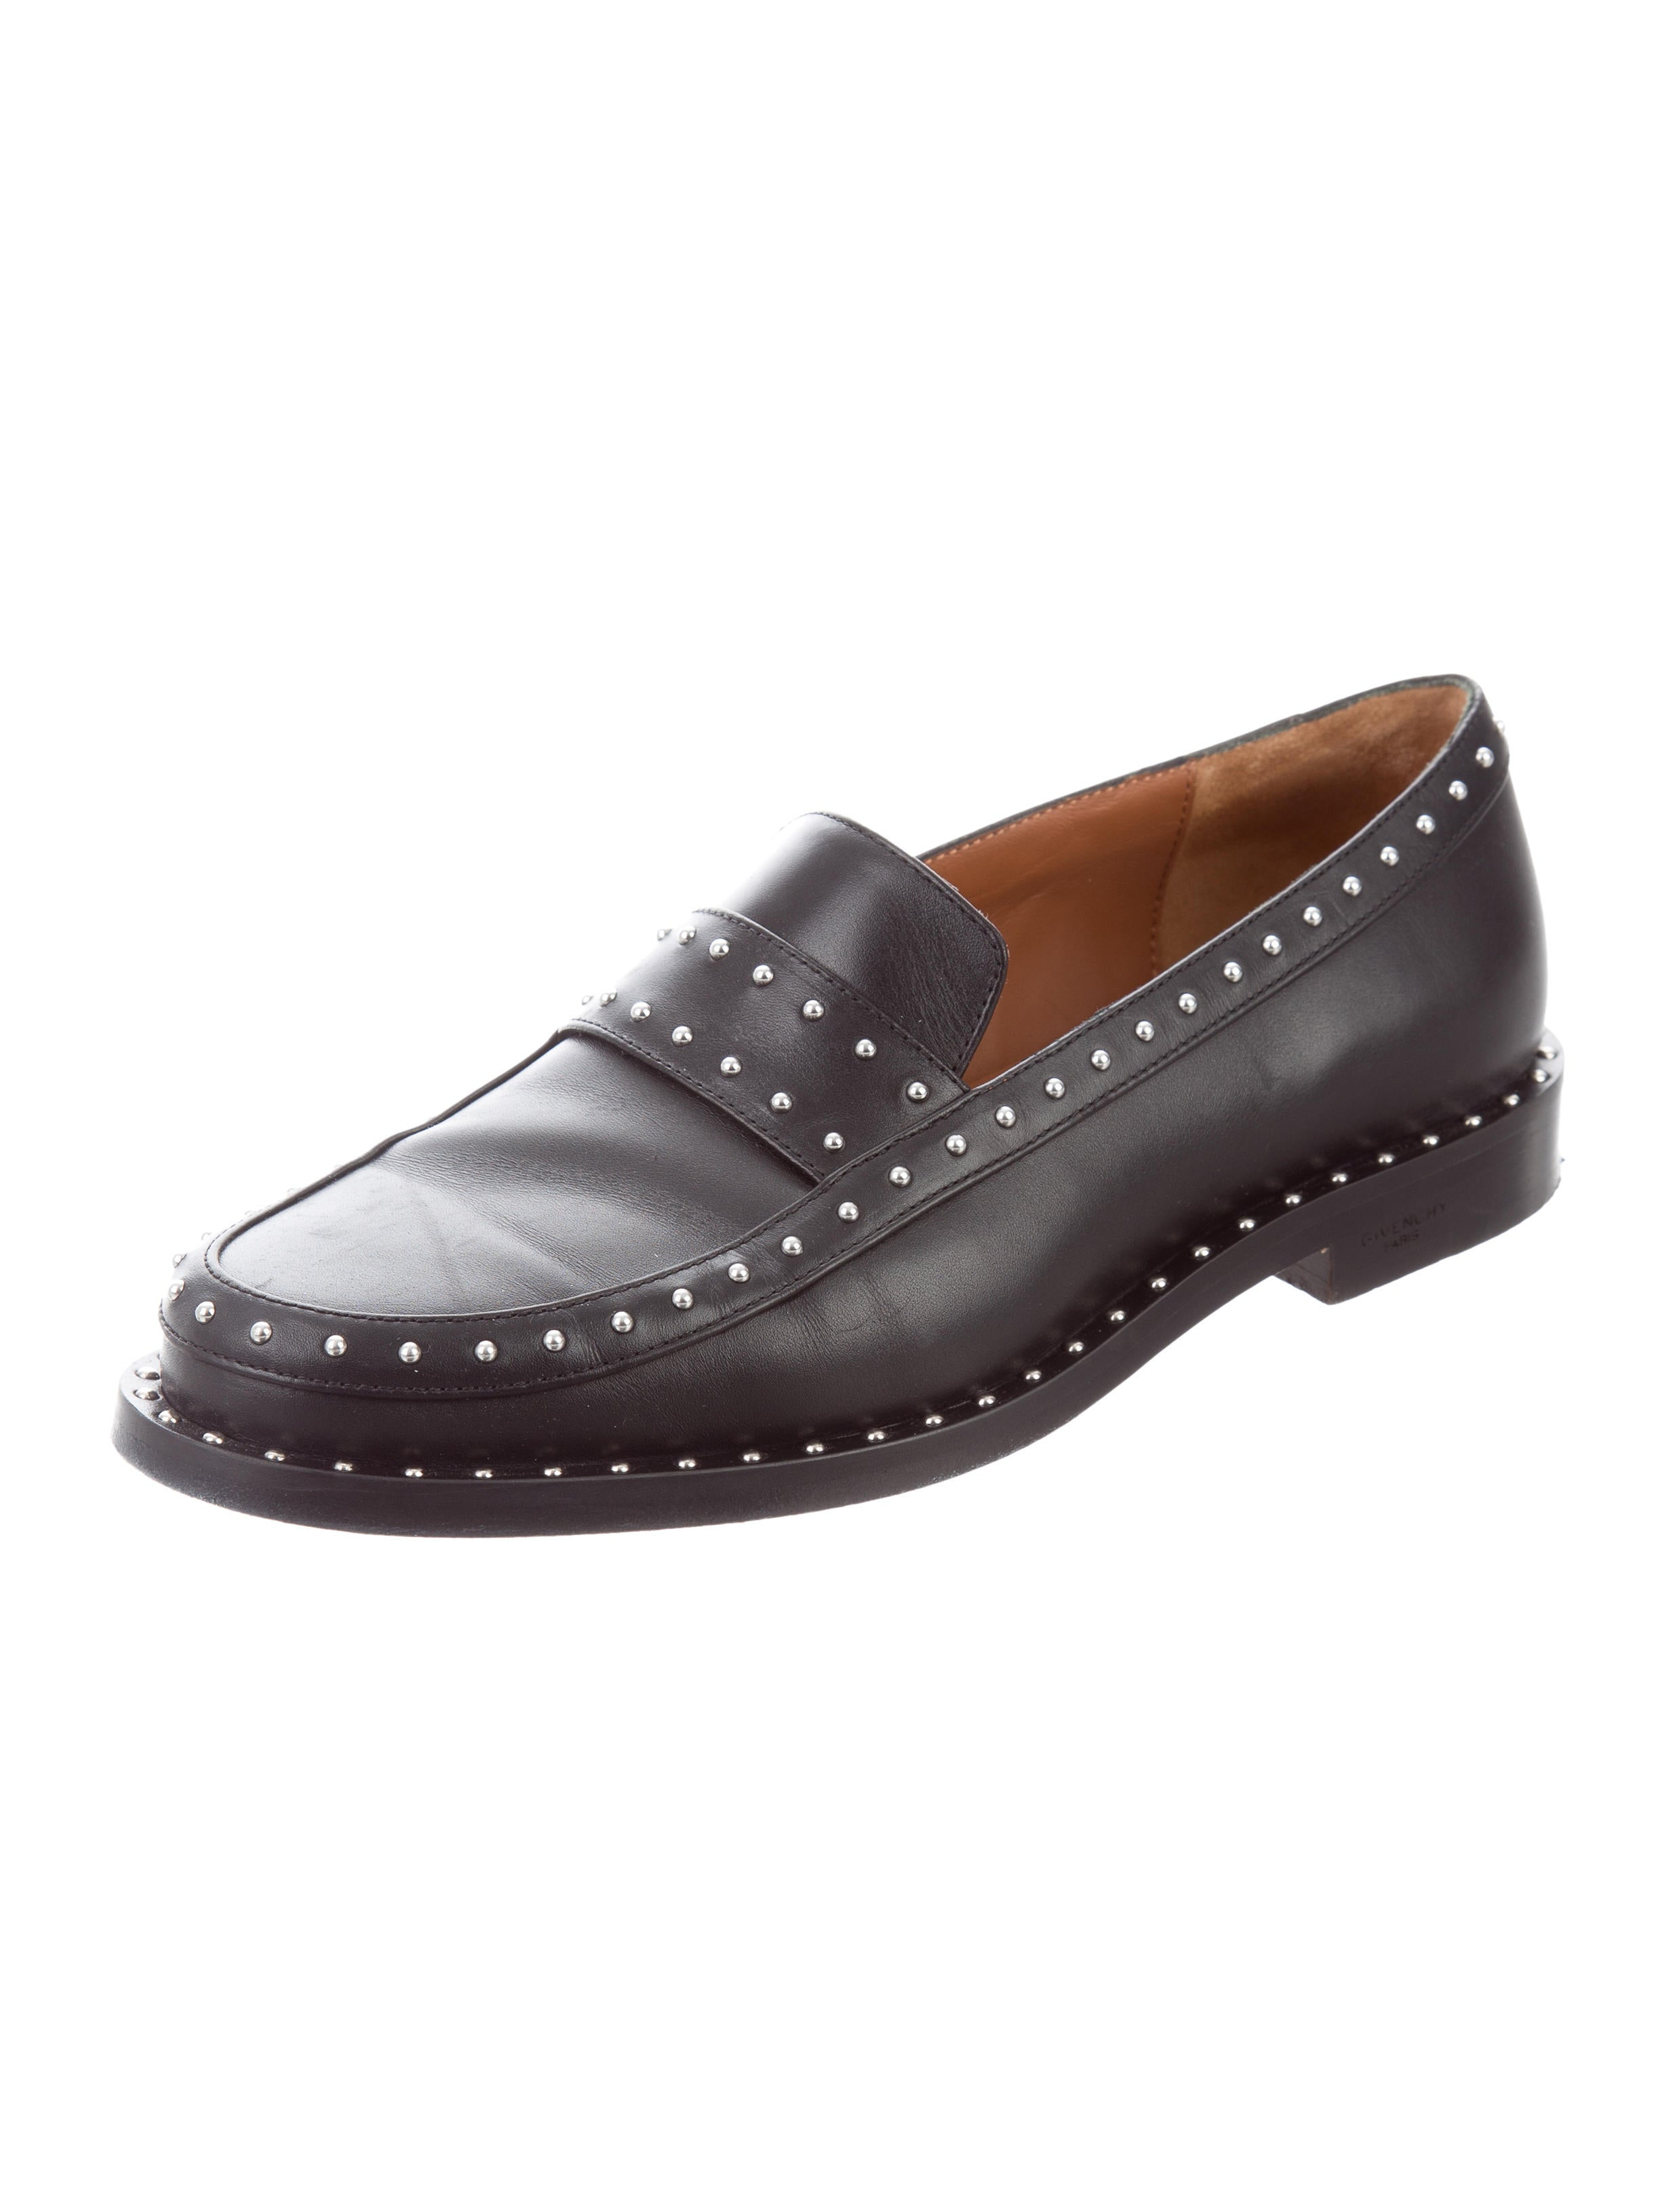 for sale footlocker Givenchy Leather Stud-Embellished Loafers free shipping with paypal Oqb6tPBlRa